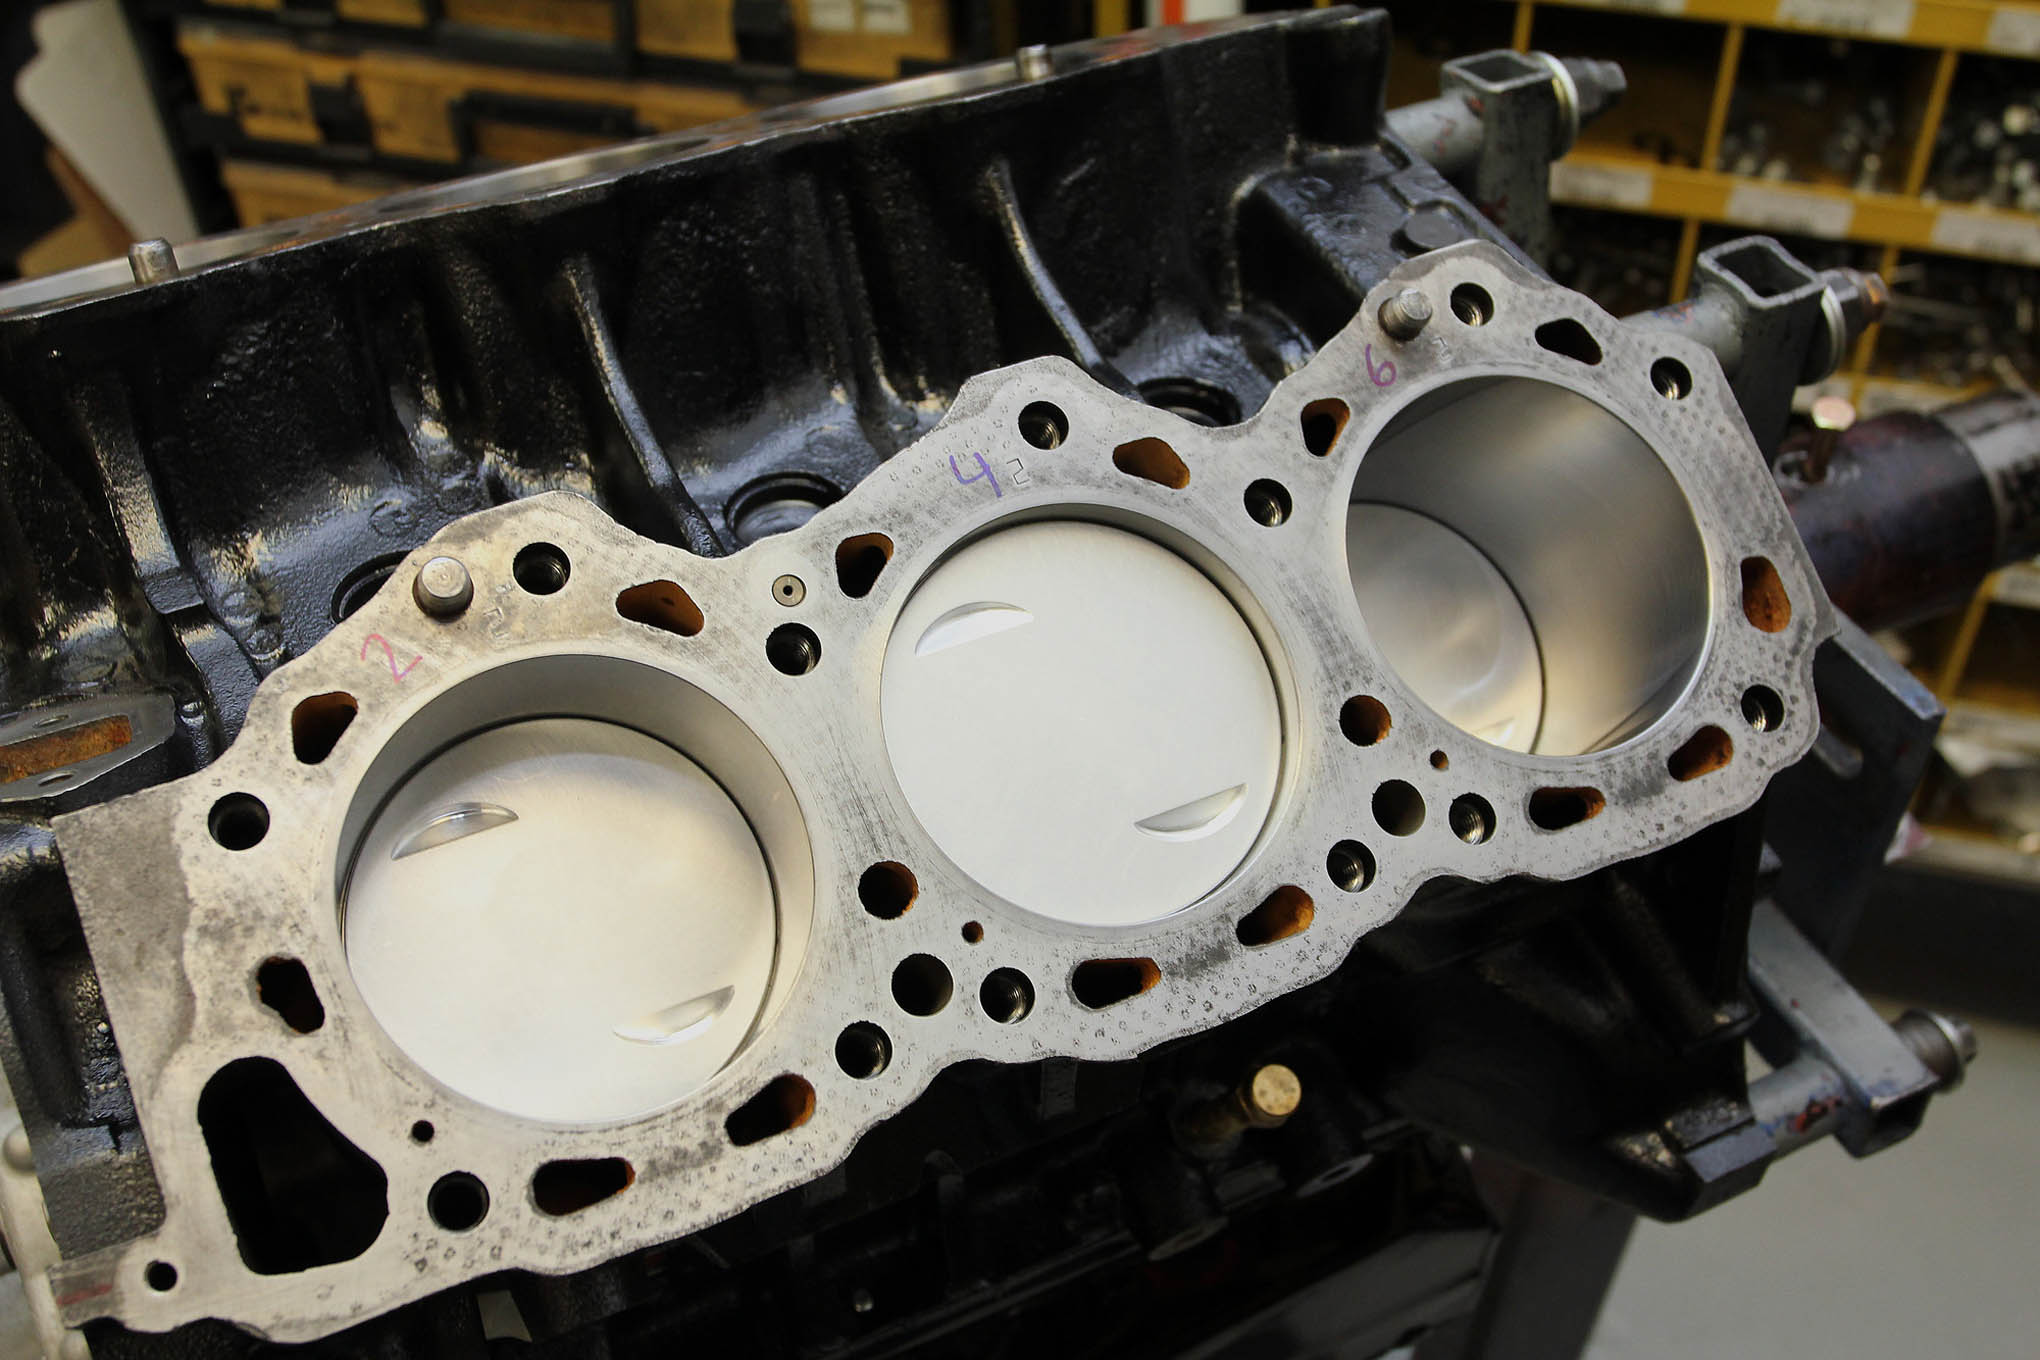 Flat-top replacement style pistons keep the compression up and costs down.